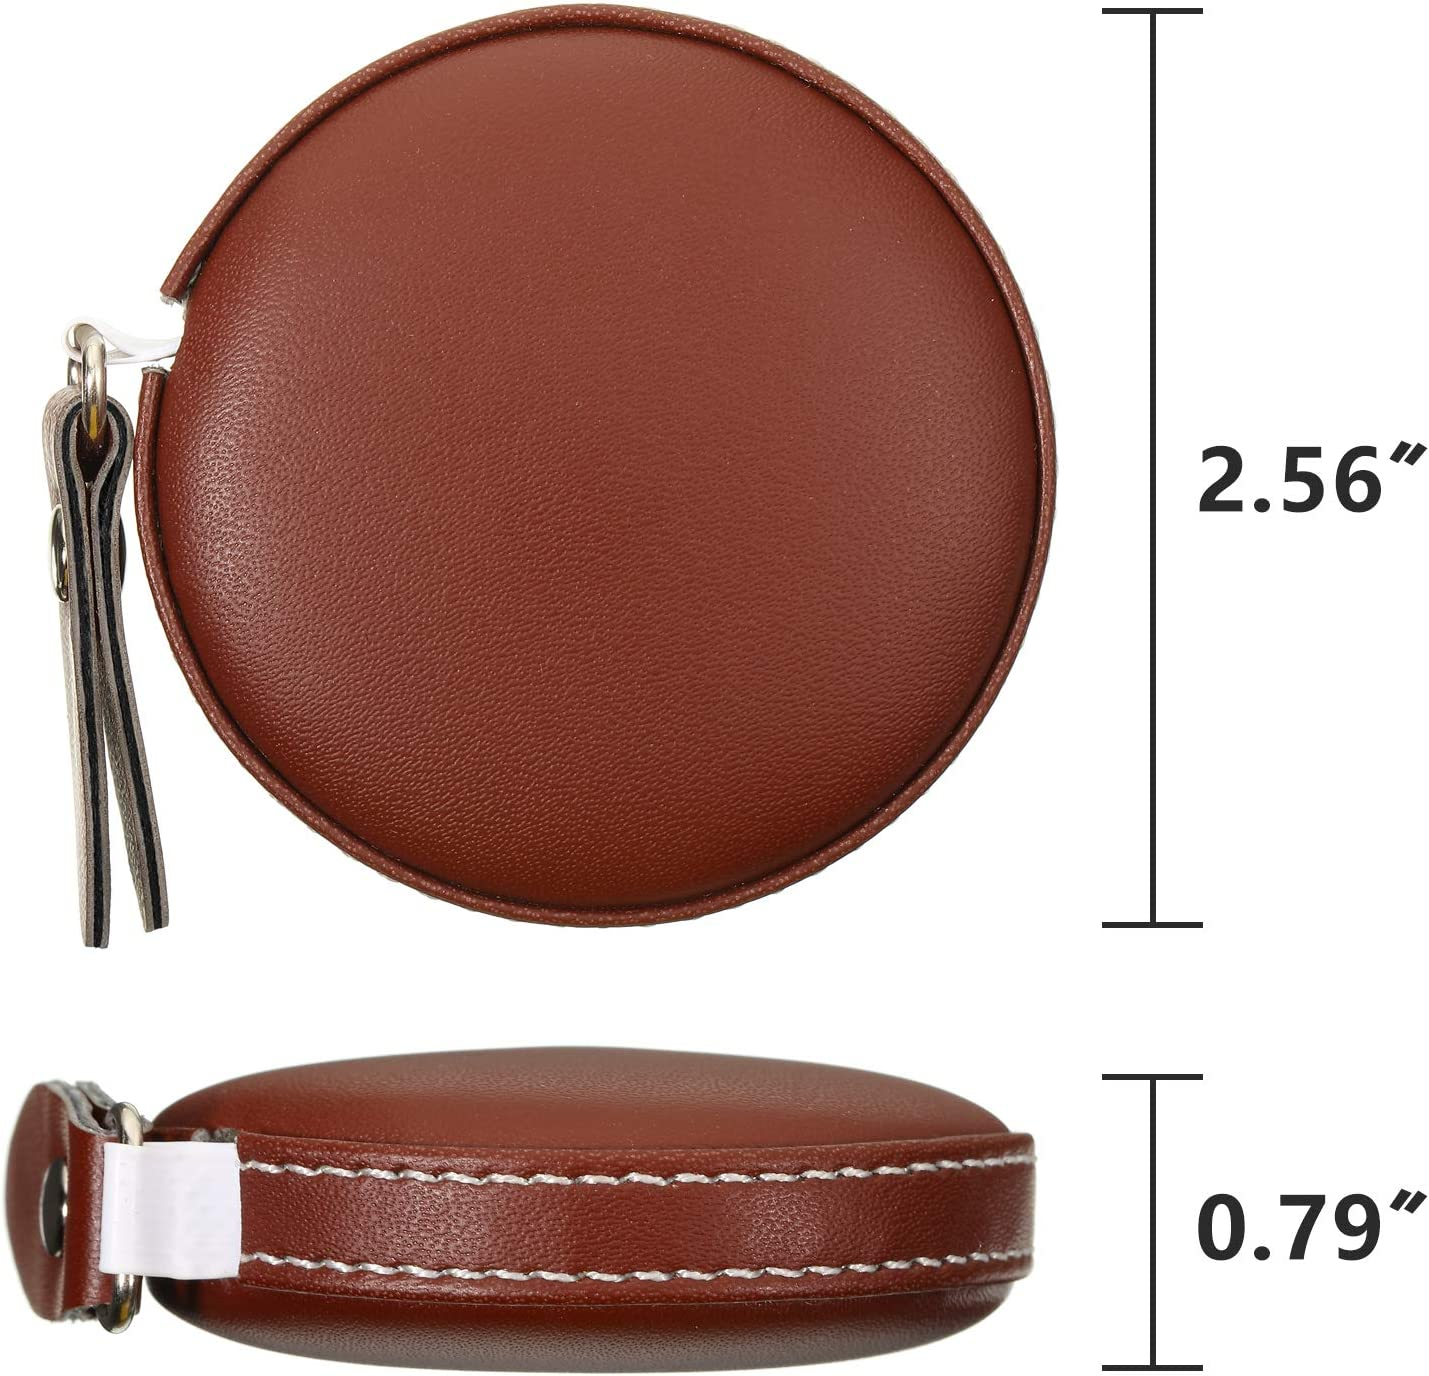 3 Pieces Body Measuring Tape Tape Measure Leather Retractable Tape Measure for Body or Weight Loss Accurate Sewing Tape Measure 60 Inch//1.5 M Round Brown